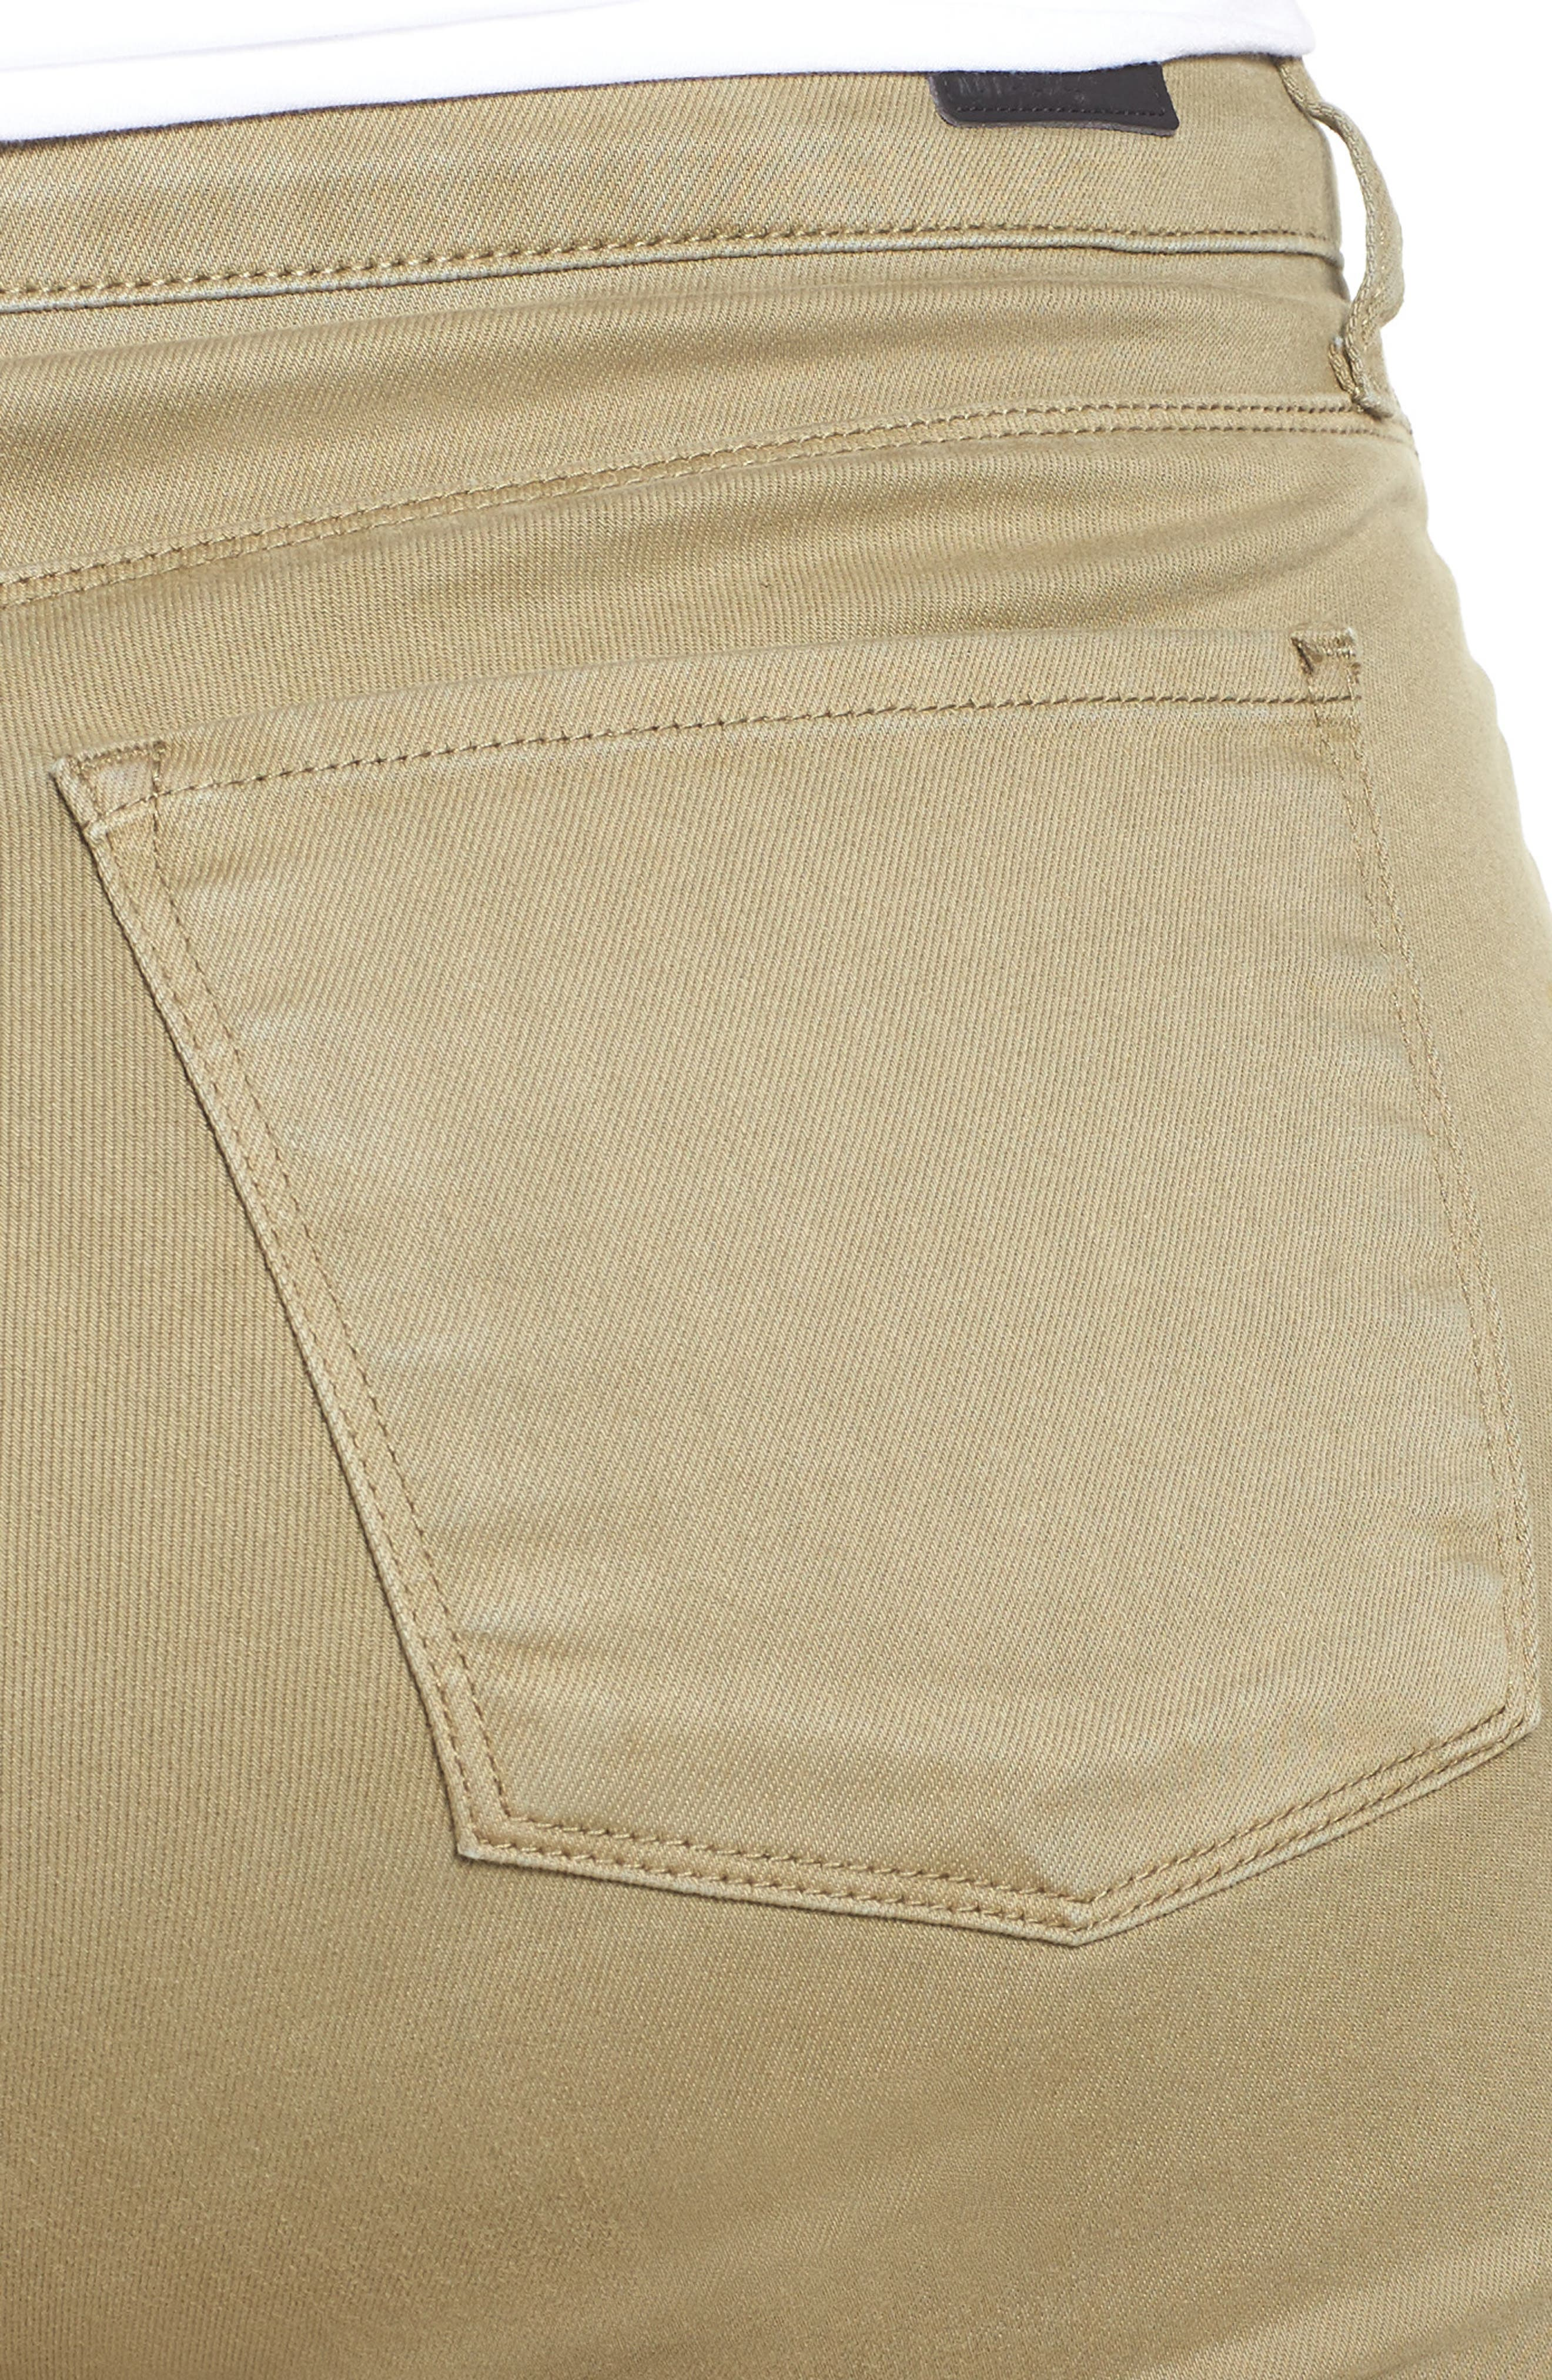 Reese Stretch Ankle Skinny Pants,                             Alternate thumbnail 4, color,                             OLIVE